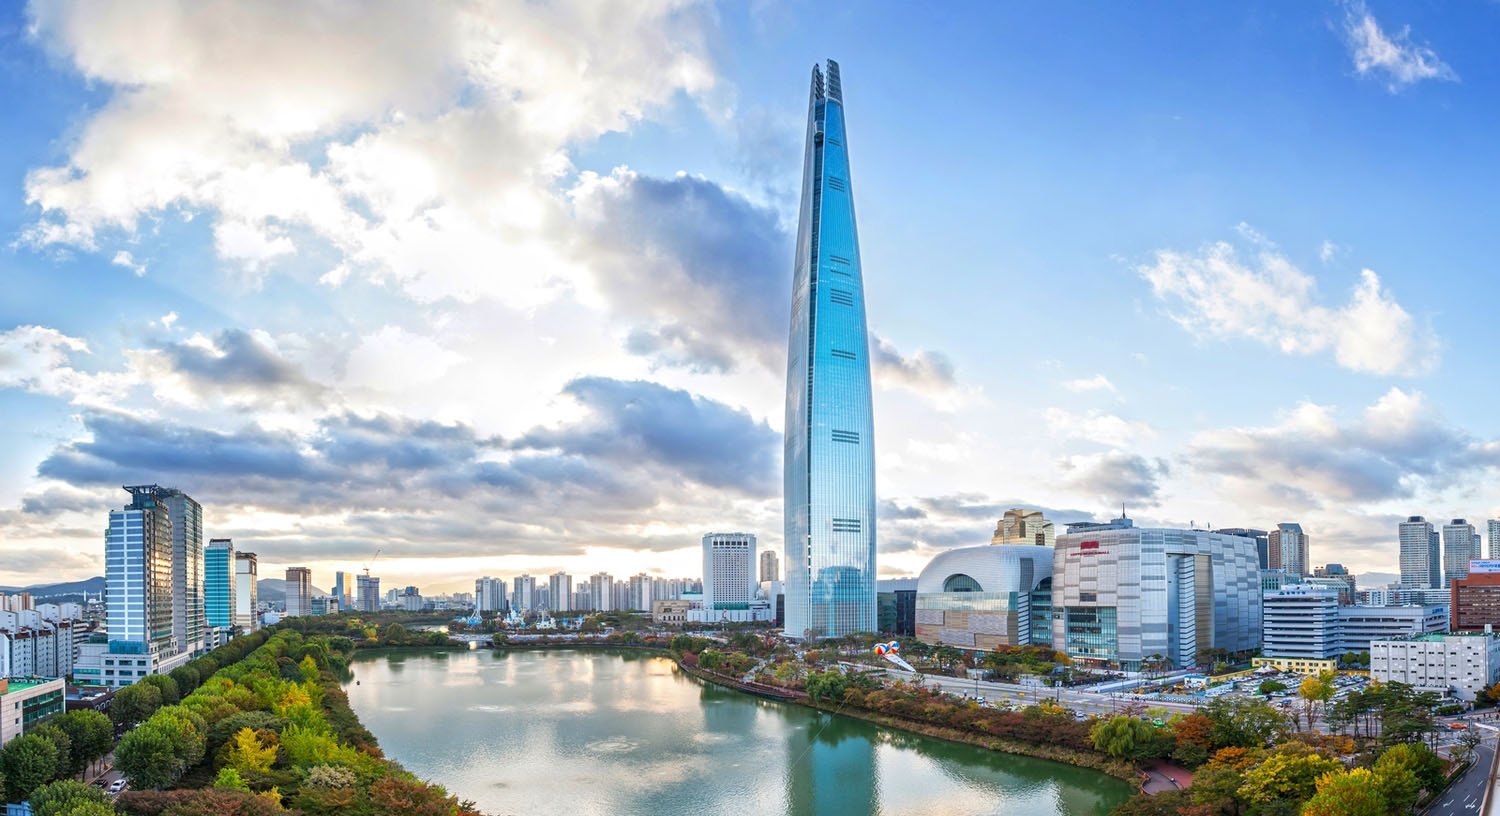 Lotte World Tower - Tallest Building in the World - Beautiful Global